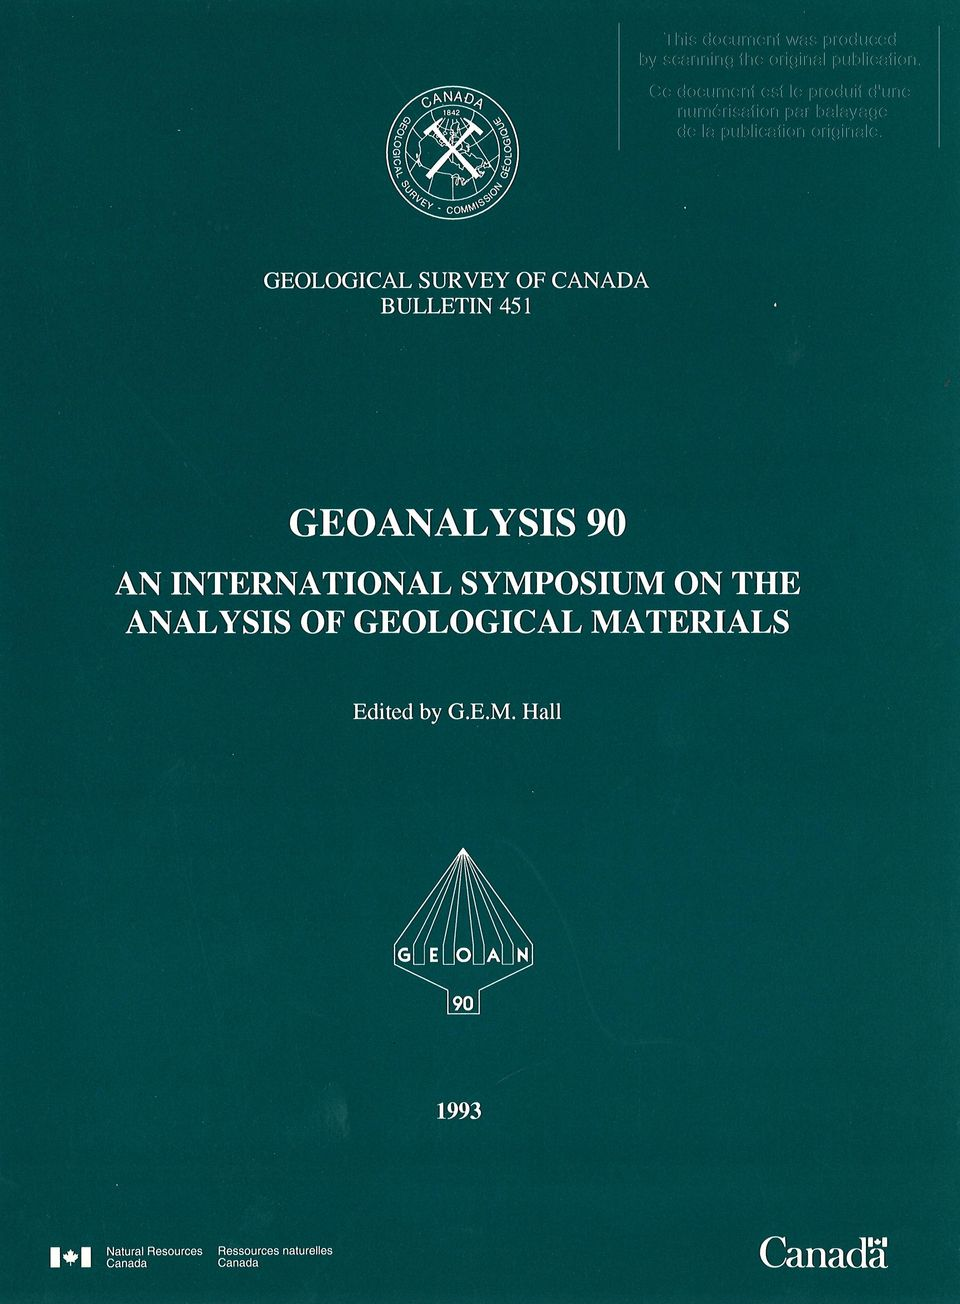 ANALYSIS OF GEOLOGICAL MA